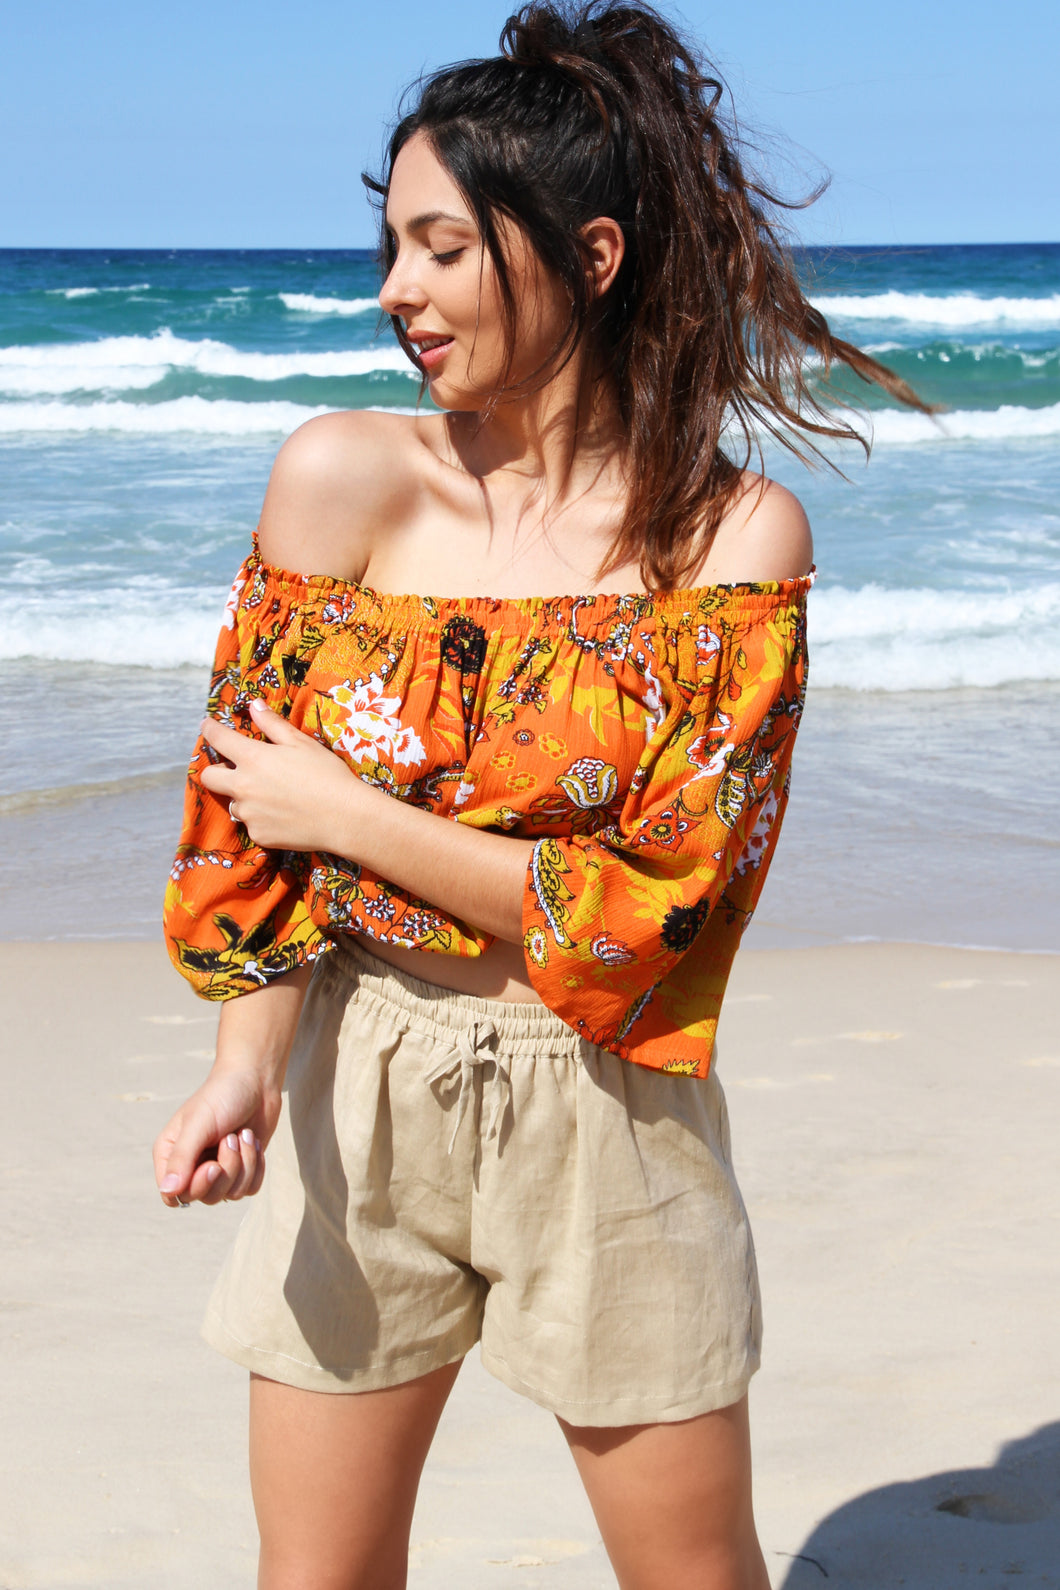 Villa Top - Burnt orange floral, top Australian Ethical Clothing Label Rare Muse